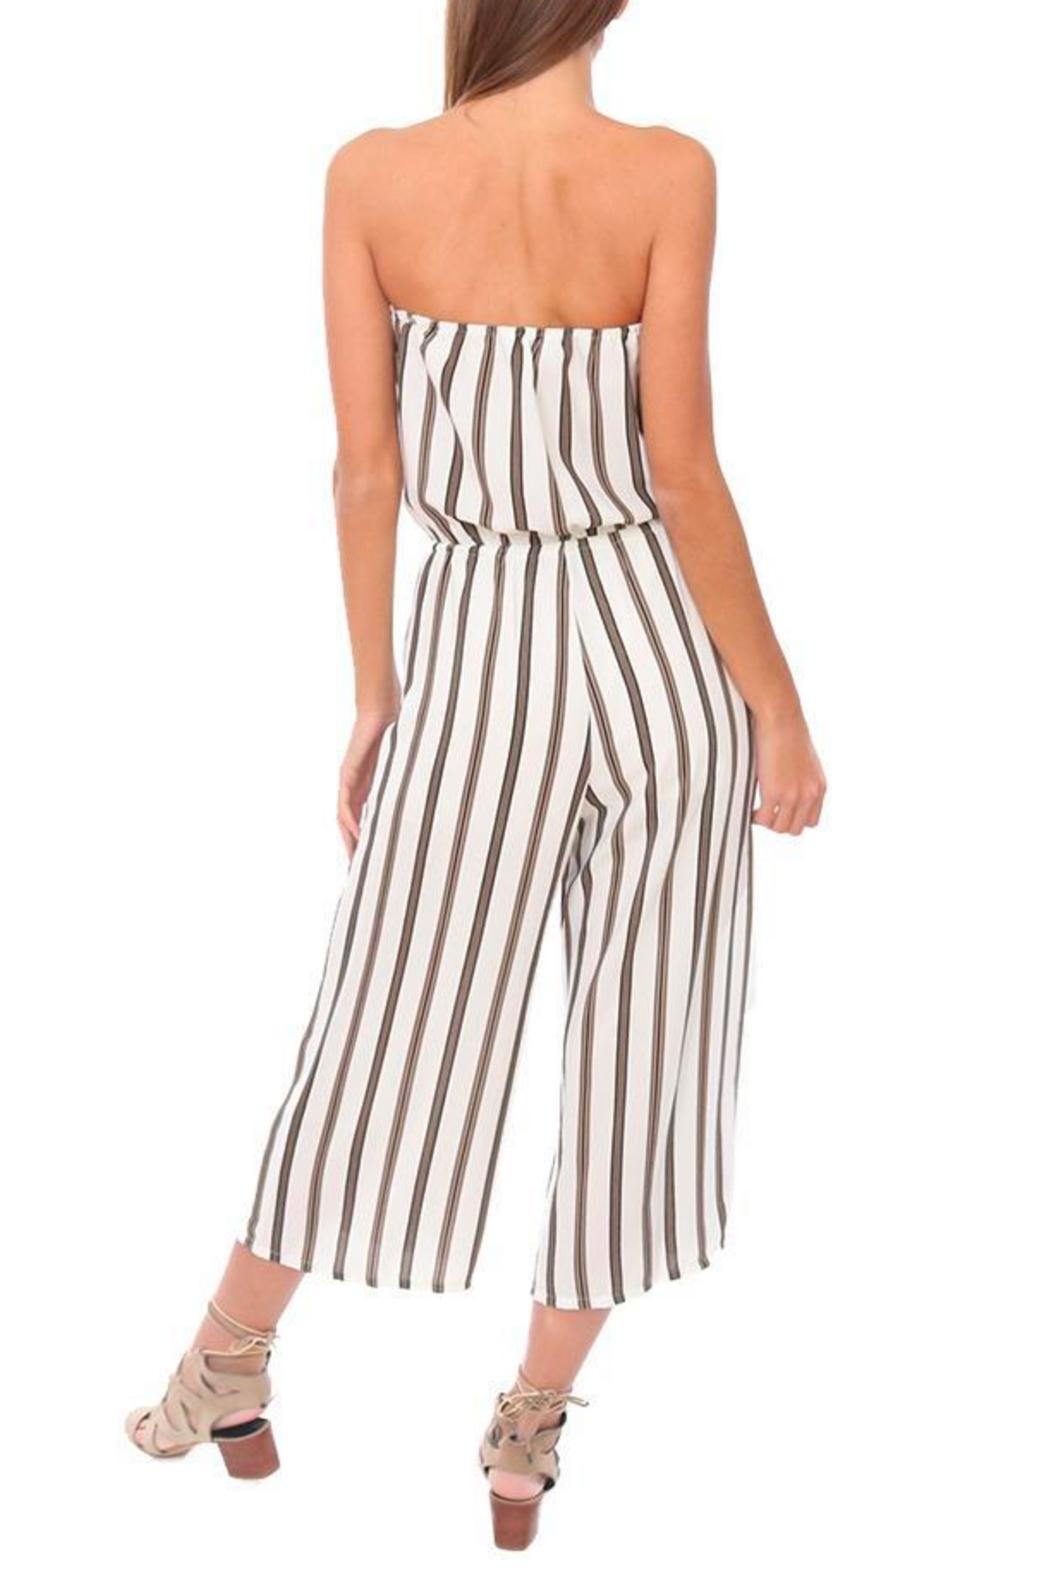 Veronica M Strapless Culotte Jumpsuit - Side Cropped Image